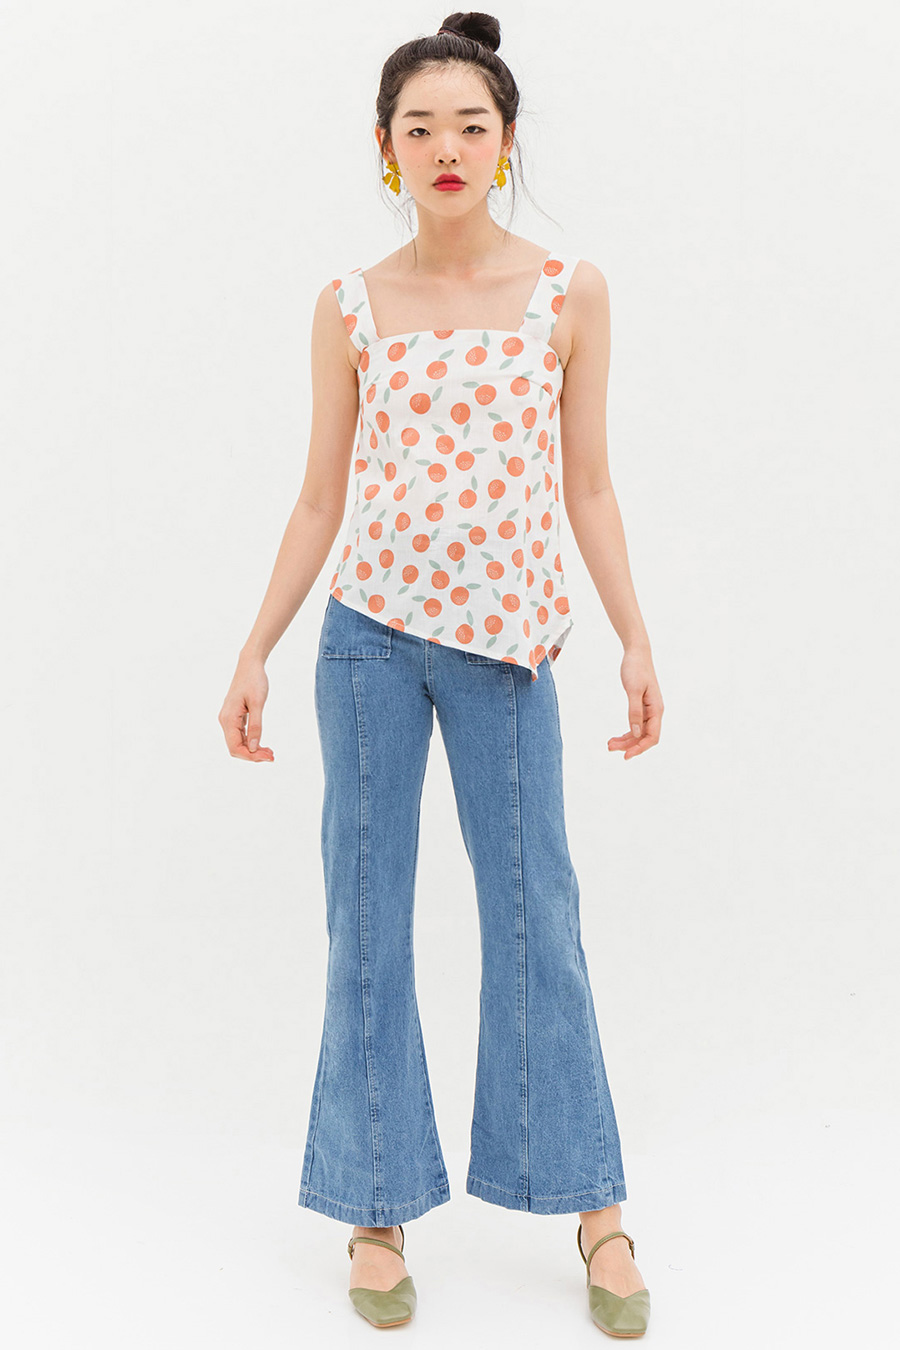 LEIGH TOP - TANGERINE [BY MODPARADE]